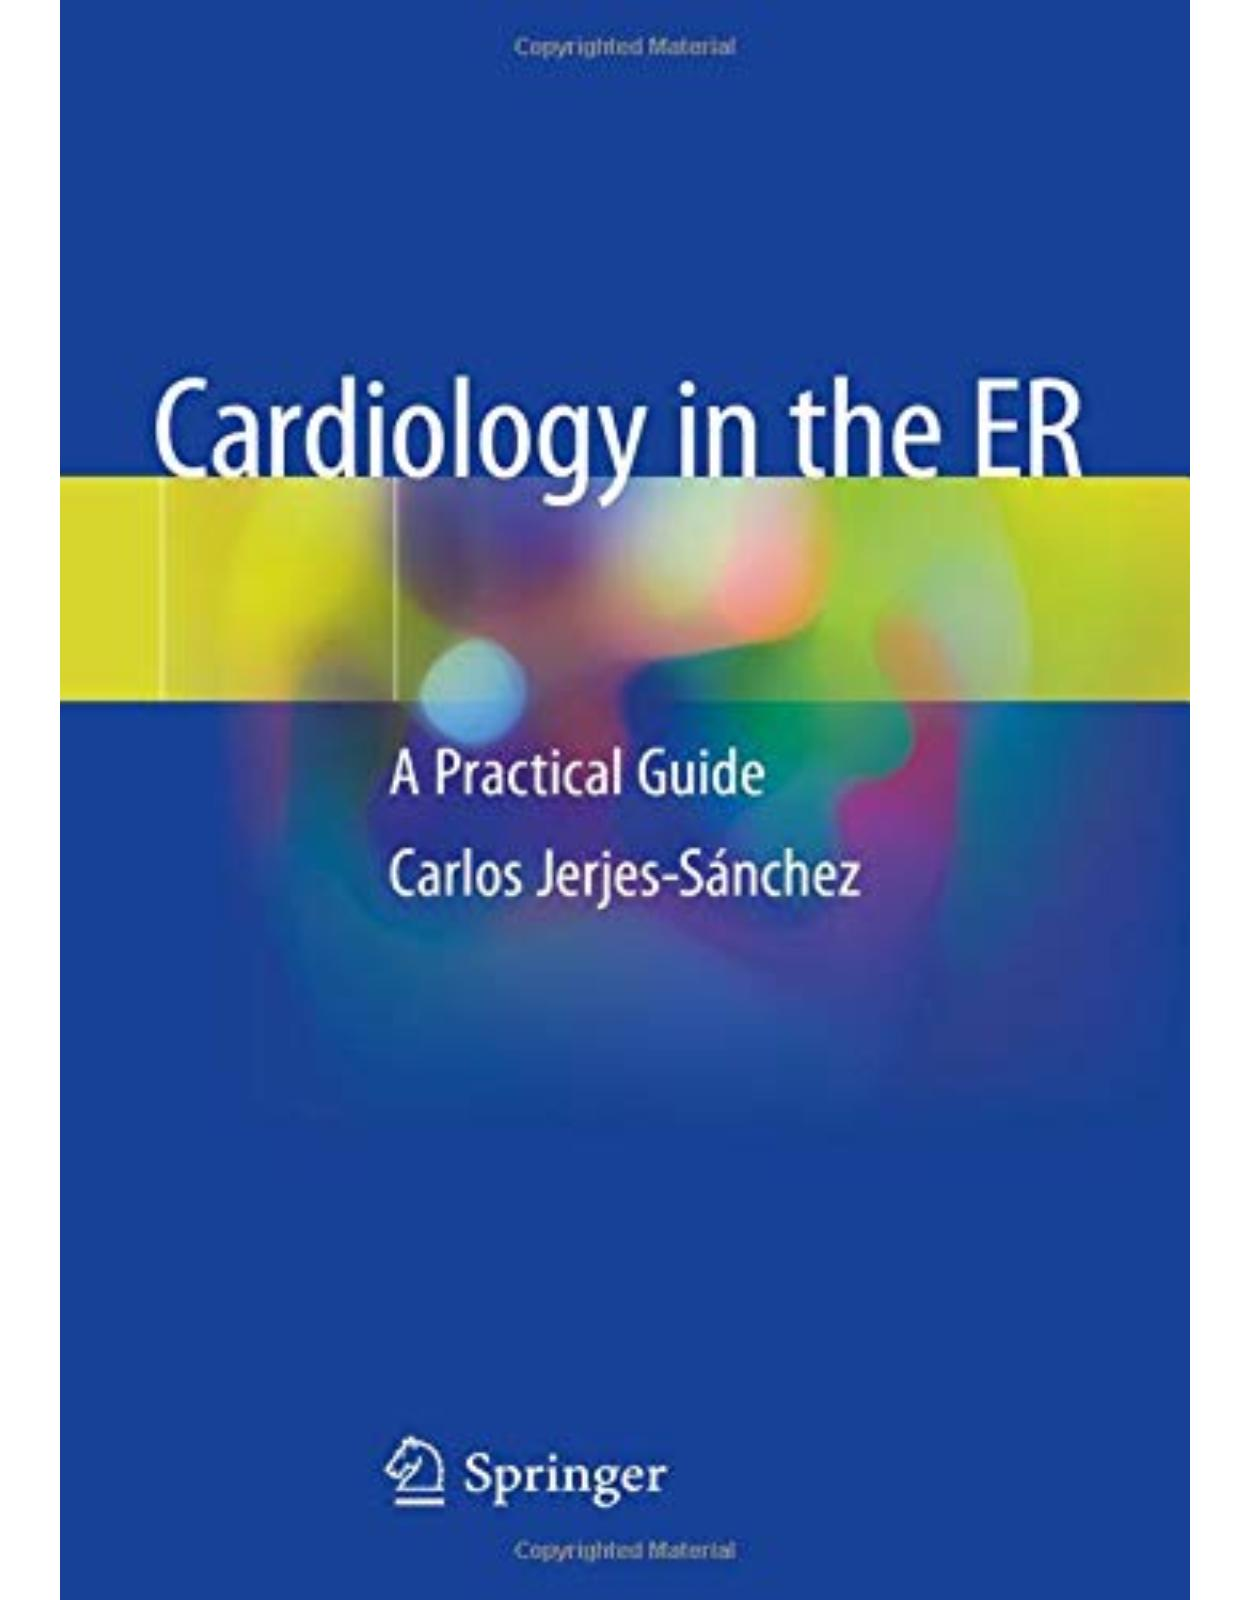 Cardiology in the ER: A Practical Guide